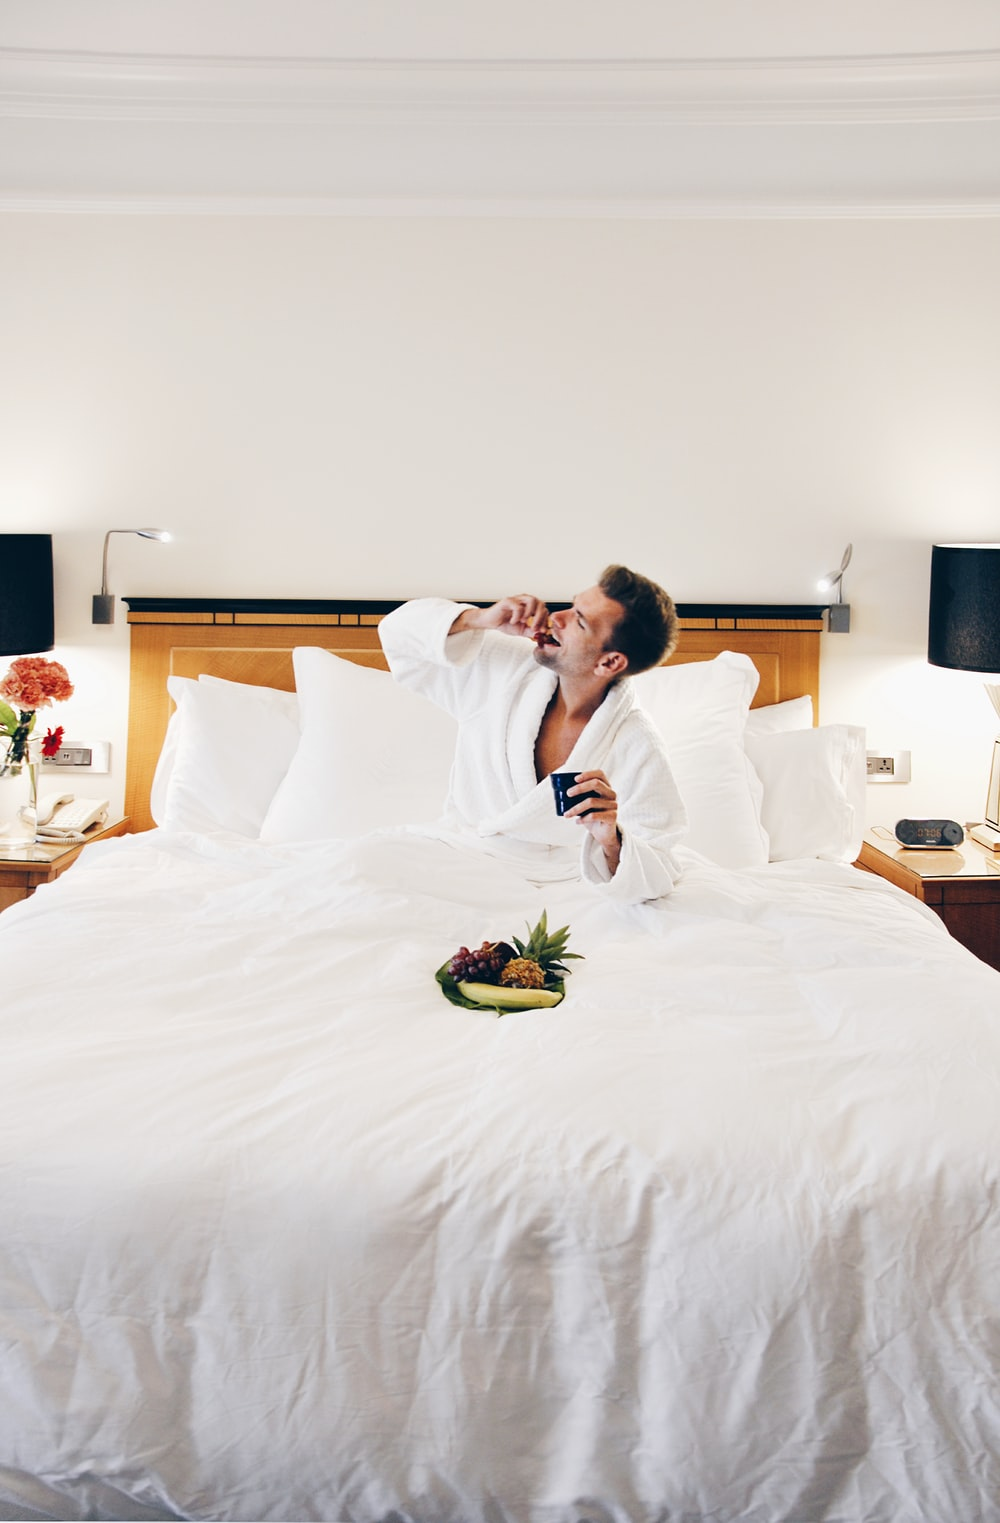 man wearing bathrobe eating on bed